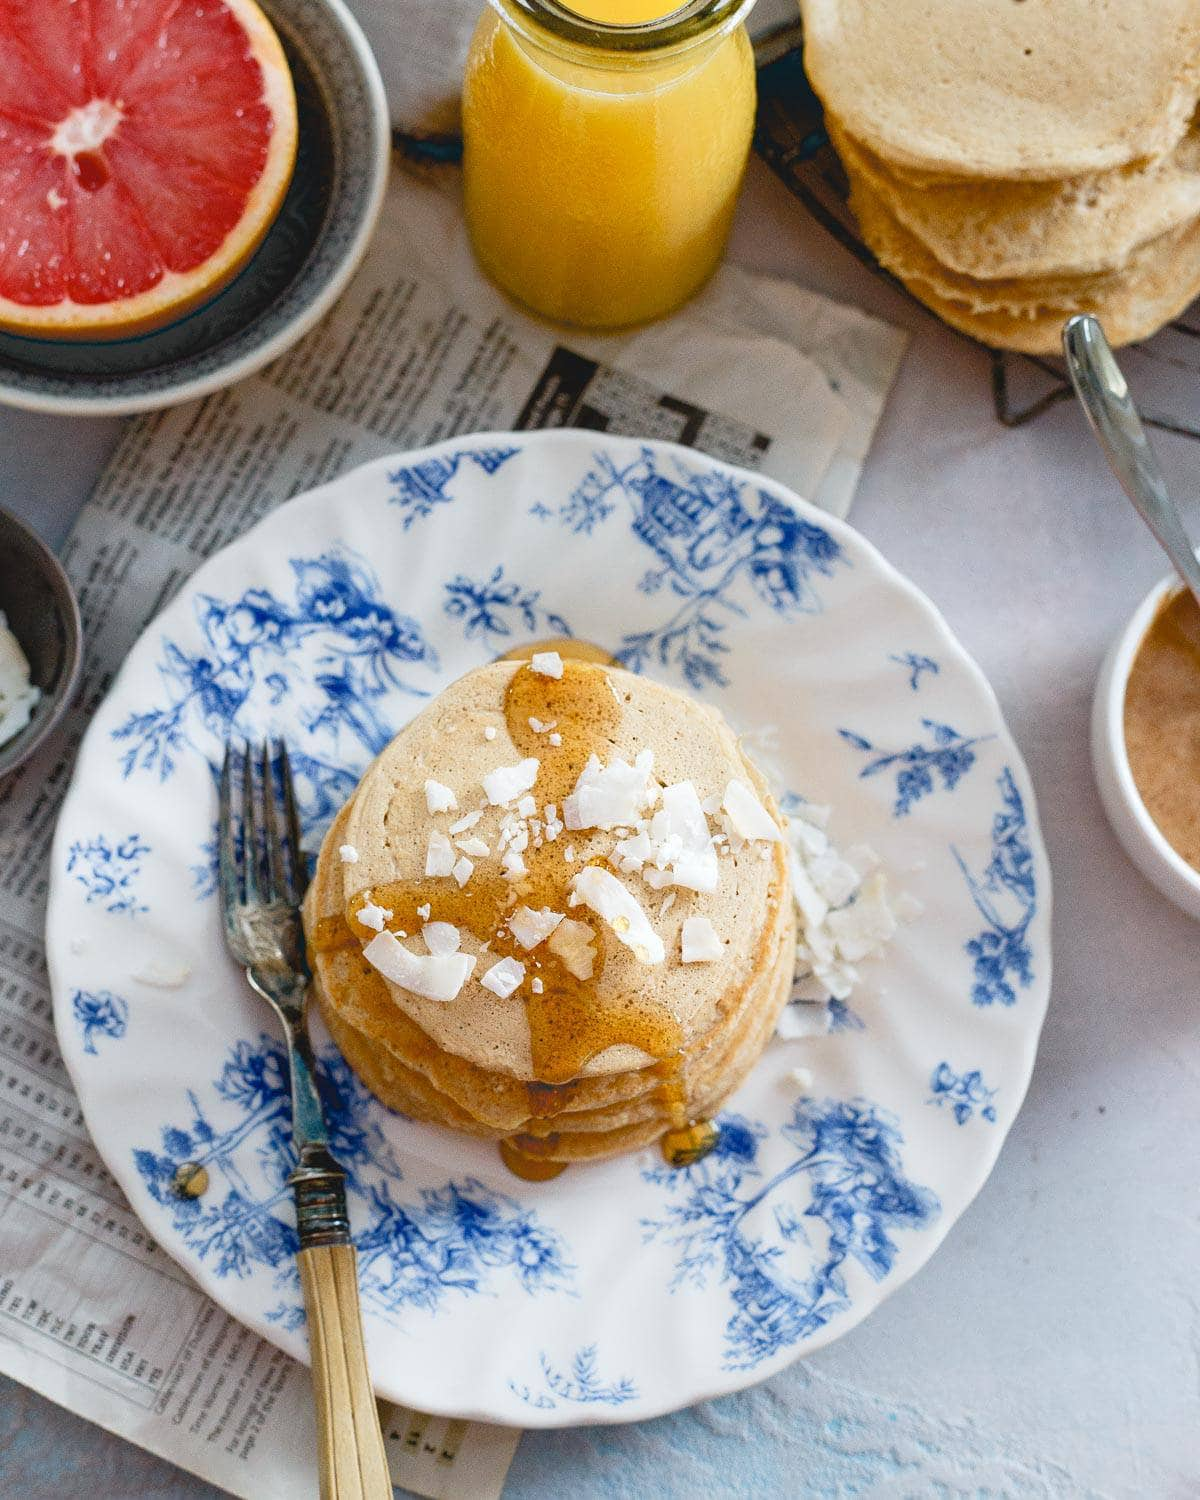 Spelt and coconut flour combine to make the perfect doughy and moist pancake breakfast.